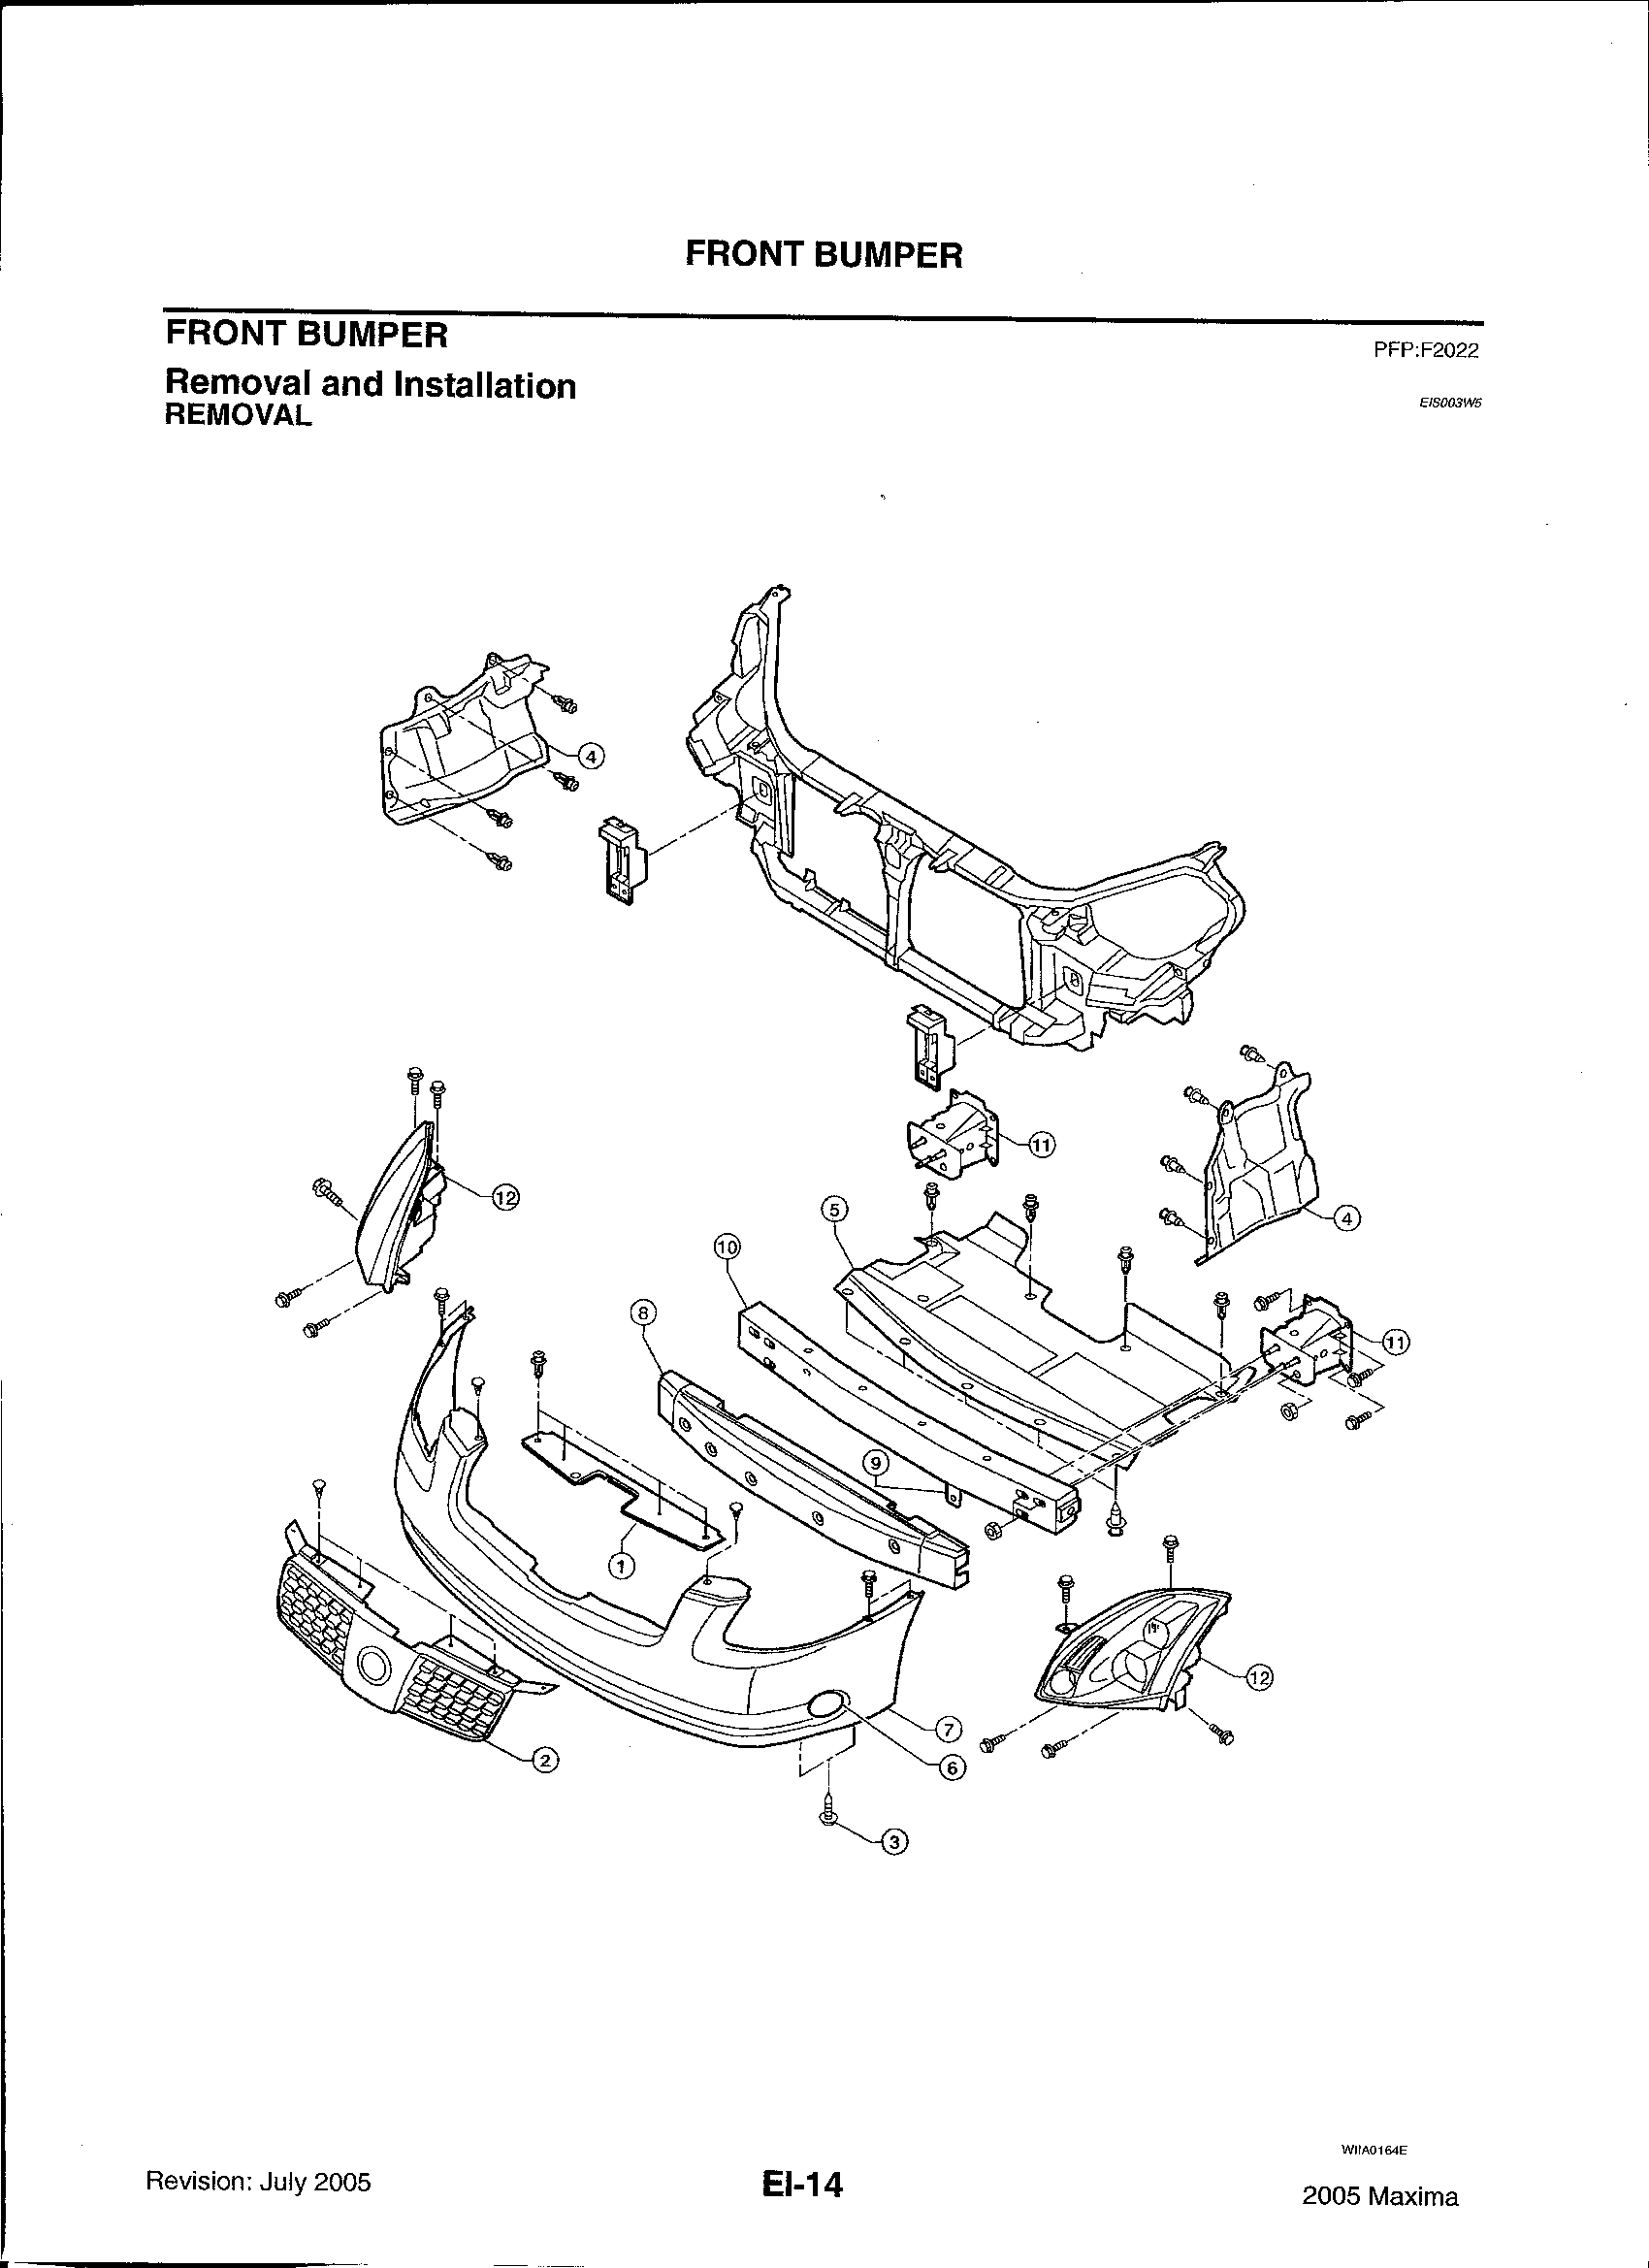 graphic  how do you change headlight bulbs on a 2006 maxima se graphic   2003 maxima hid wiring diagram